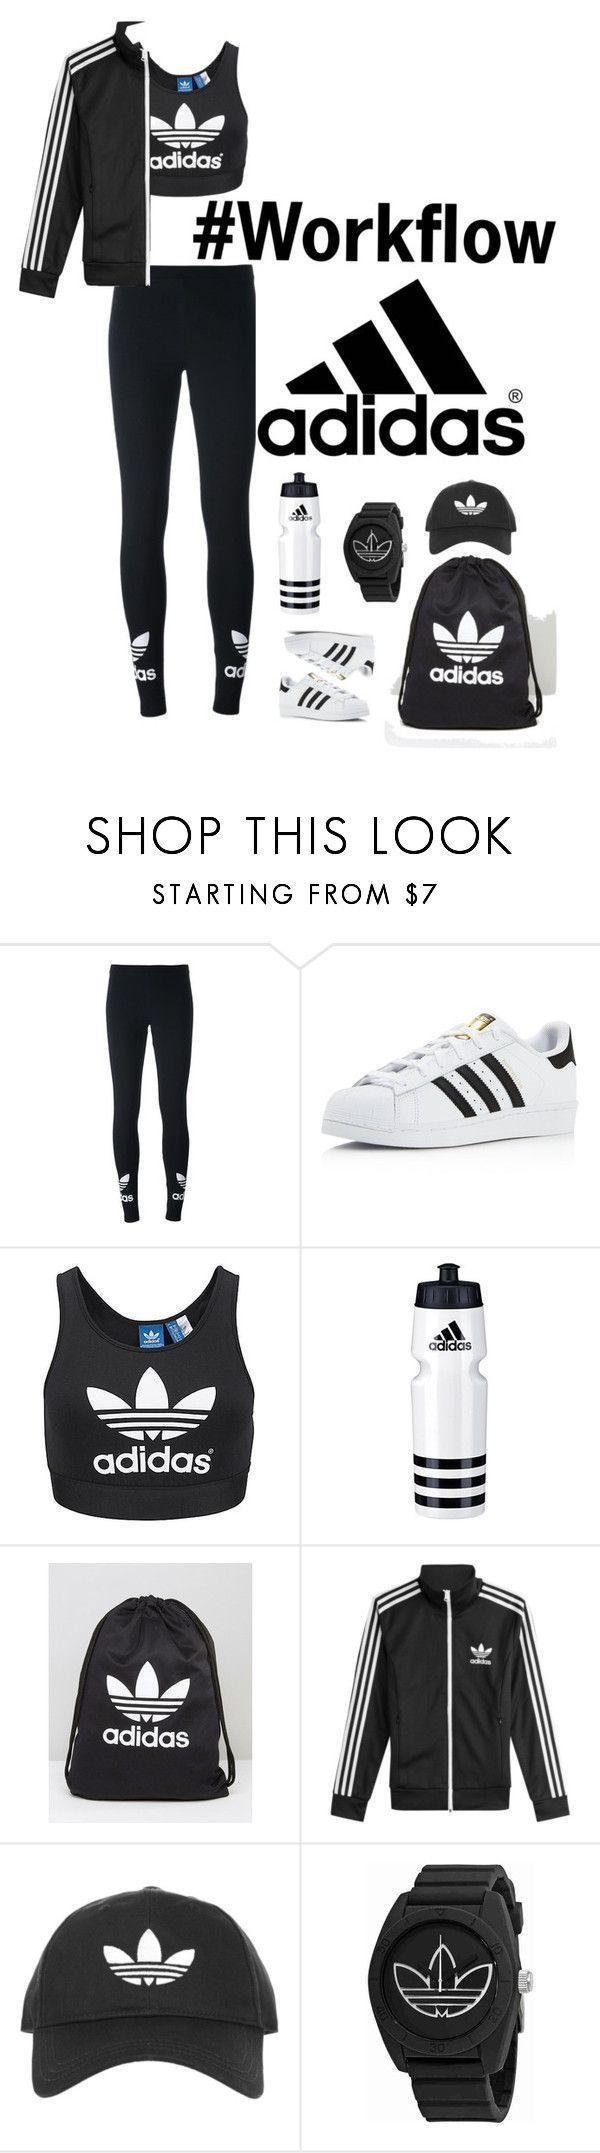 Workout #1 by monika-lopez on Polyvore featuring adidas, adidas Originals, Topshop, workout and Worflow